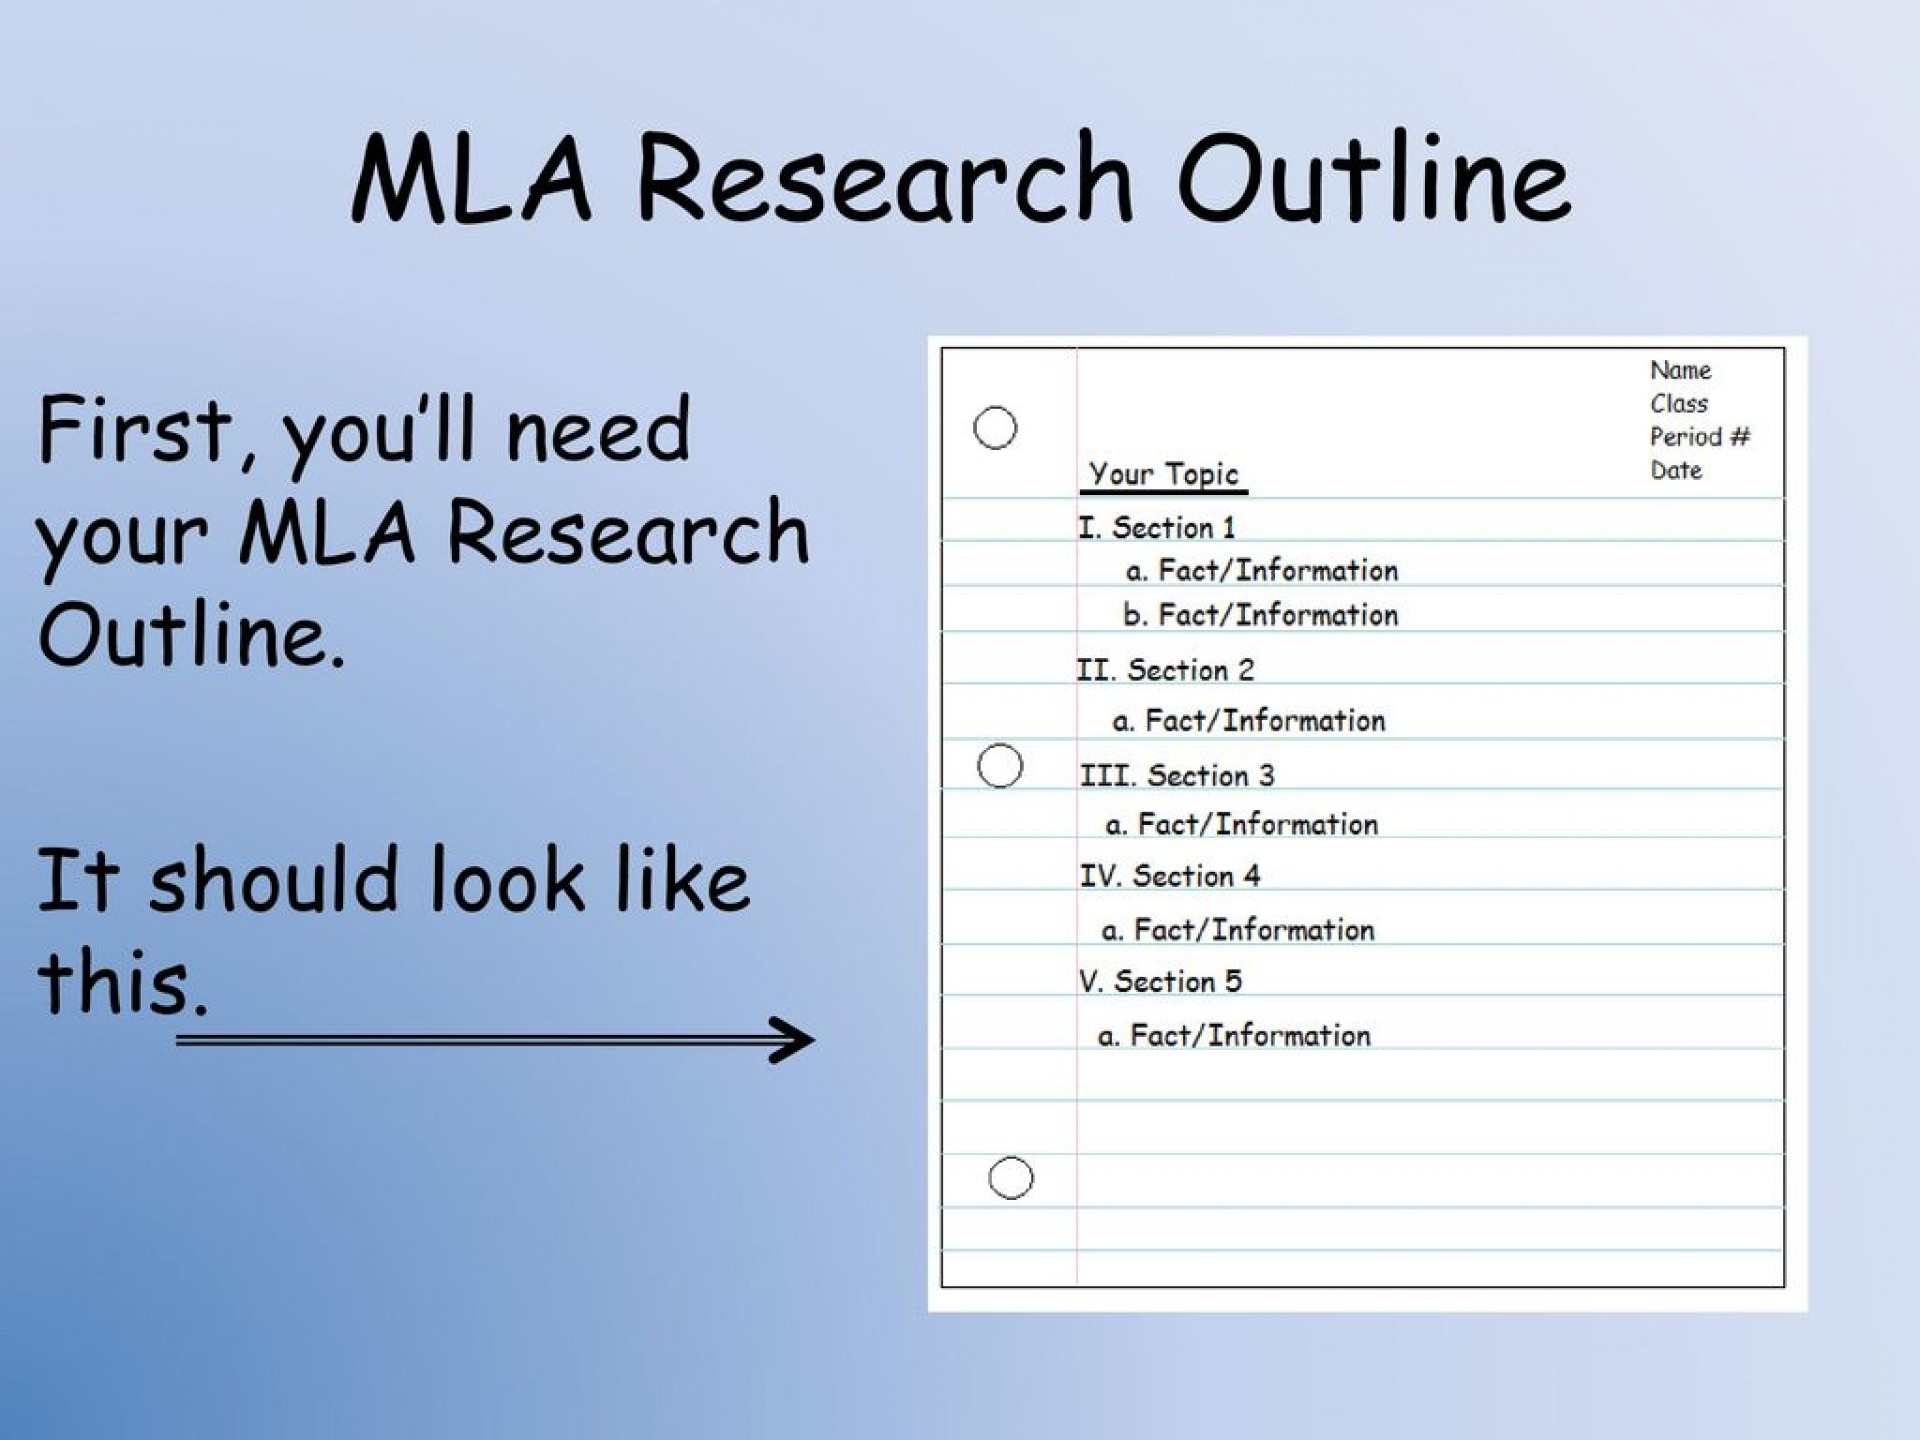 002 Mlaresearchoutlinefirst2cyoue28099llneedyourmlaresearchoutline Itshouldlooklikethis How To Do Notecards For Research Paper Staggering A Mla Make 1920